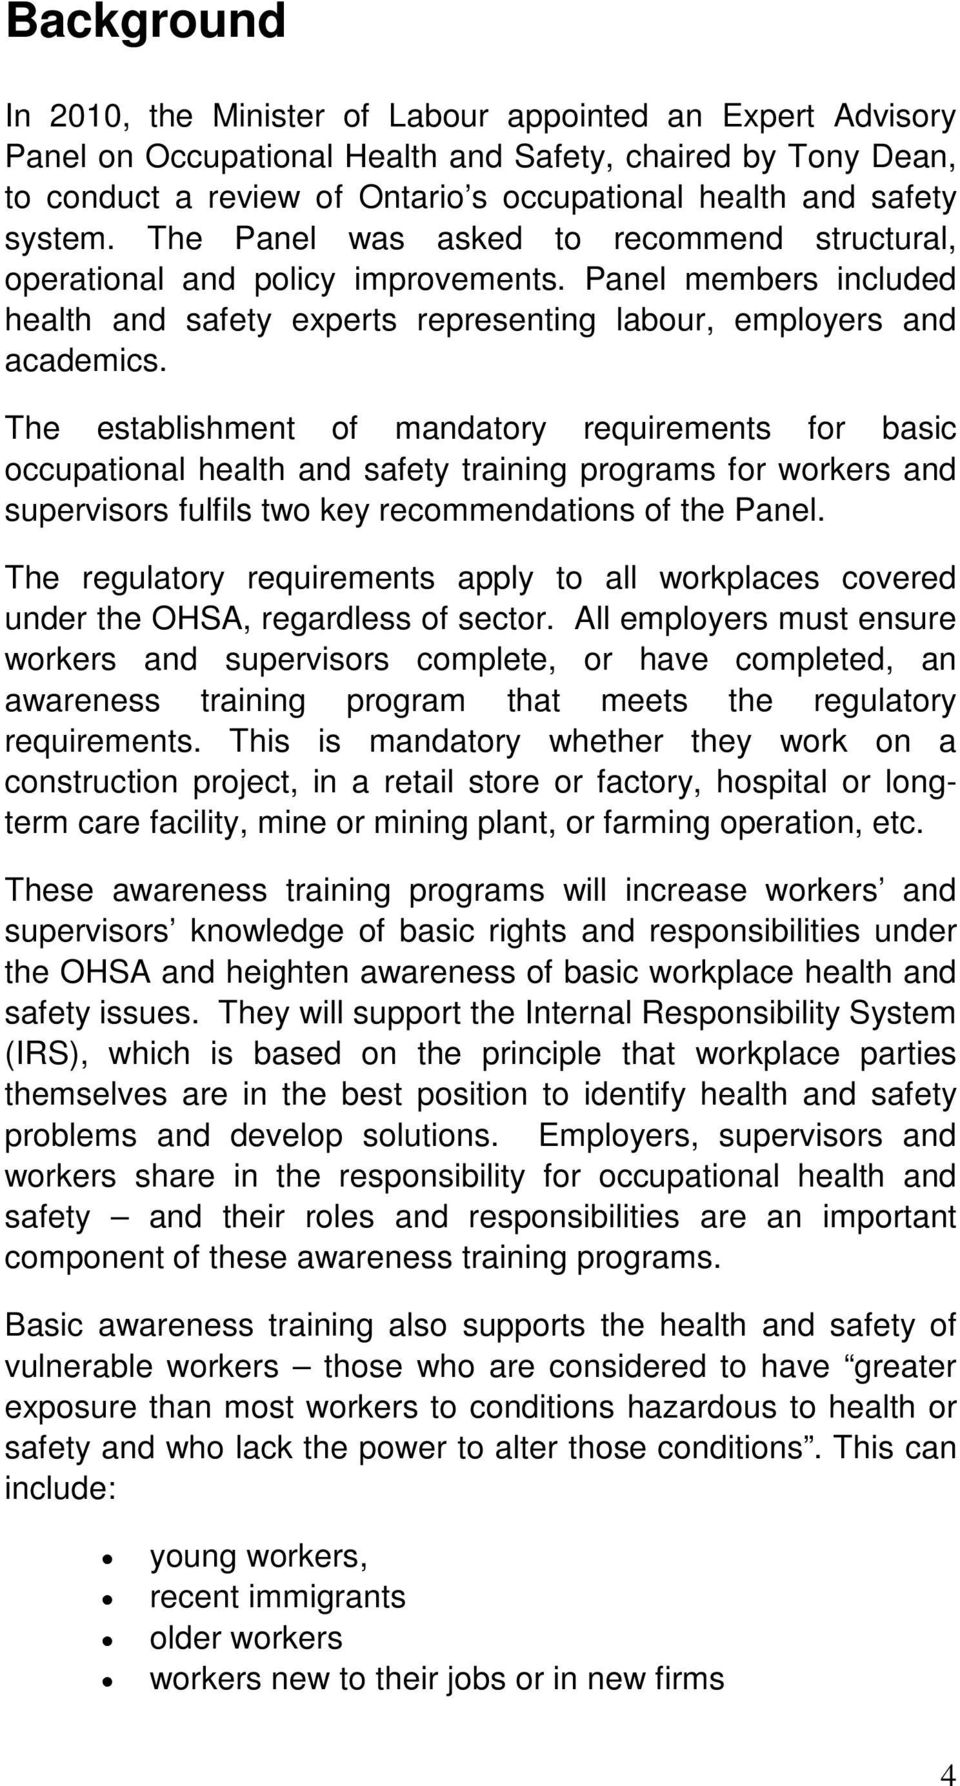 The establishment of mandatory requirements for basic occupational health and safety training programs for workers and supervisors fulfils two key recommendations of the Panel.